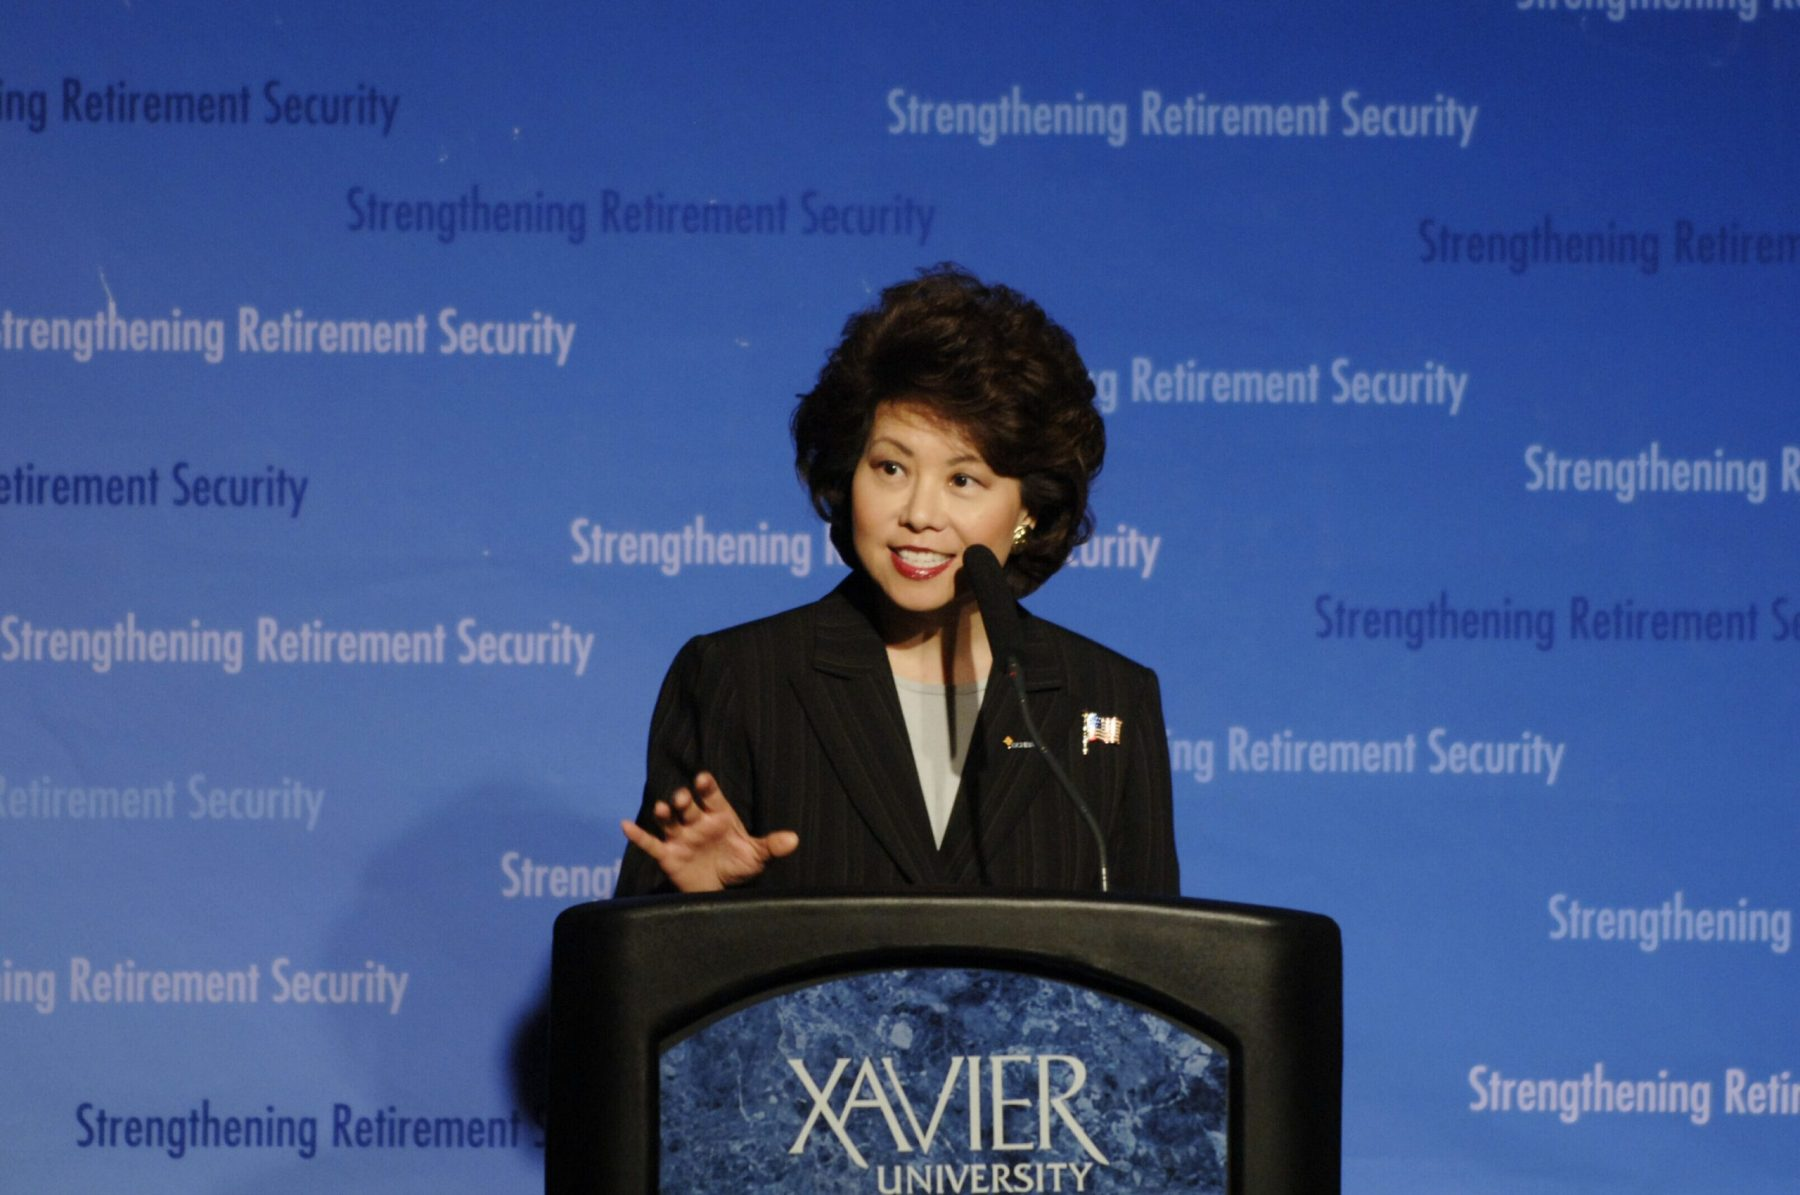 Secretary Elaine Chao speaking about retirement security at Xavier University, Cincinnati, Ohio.